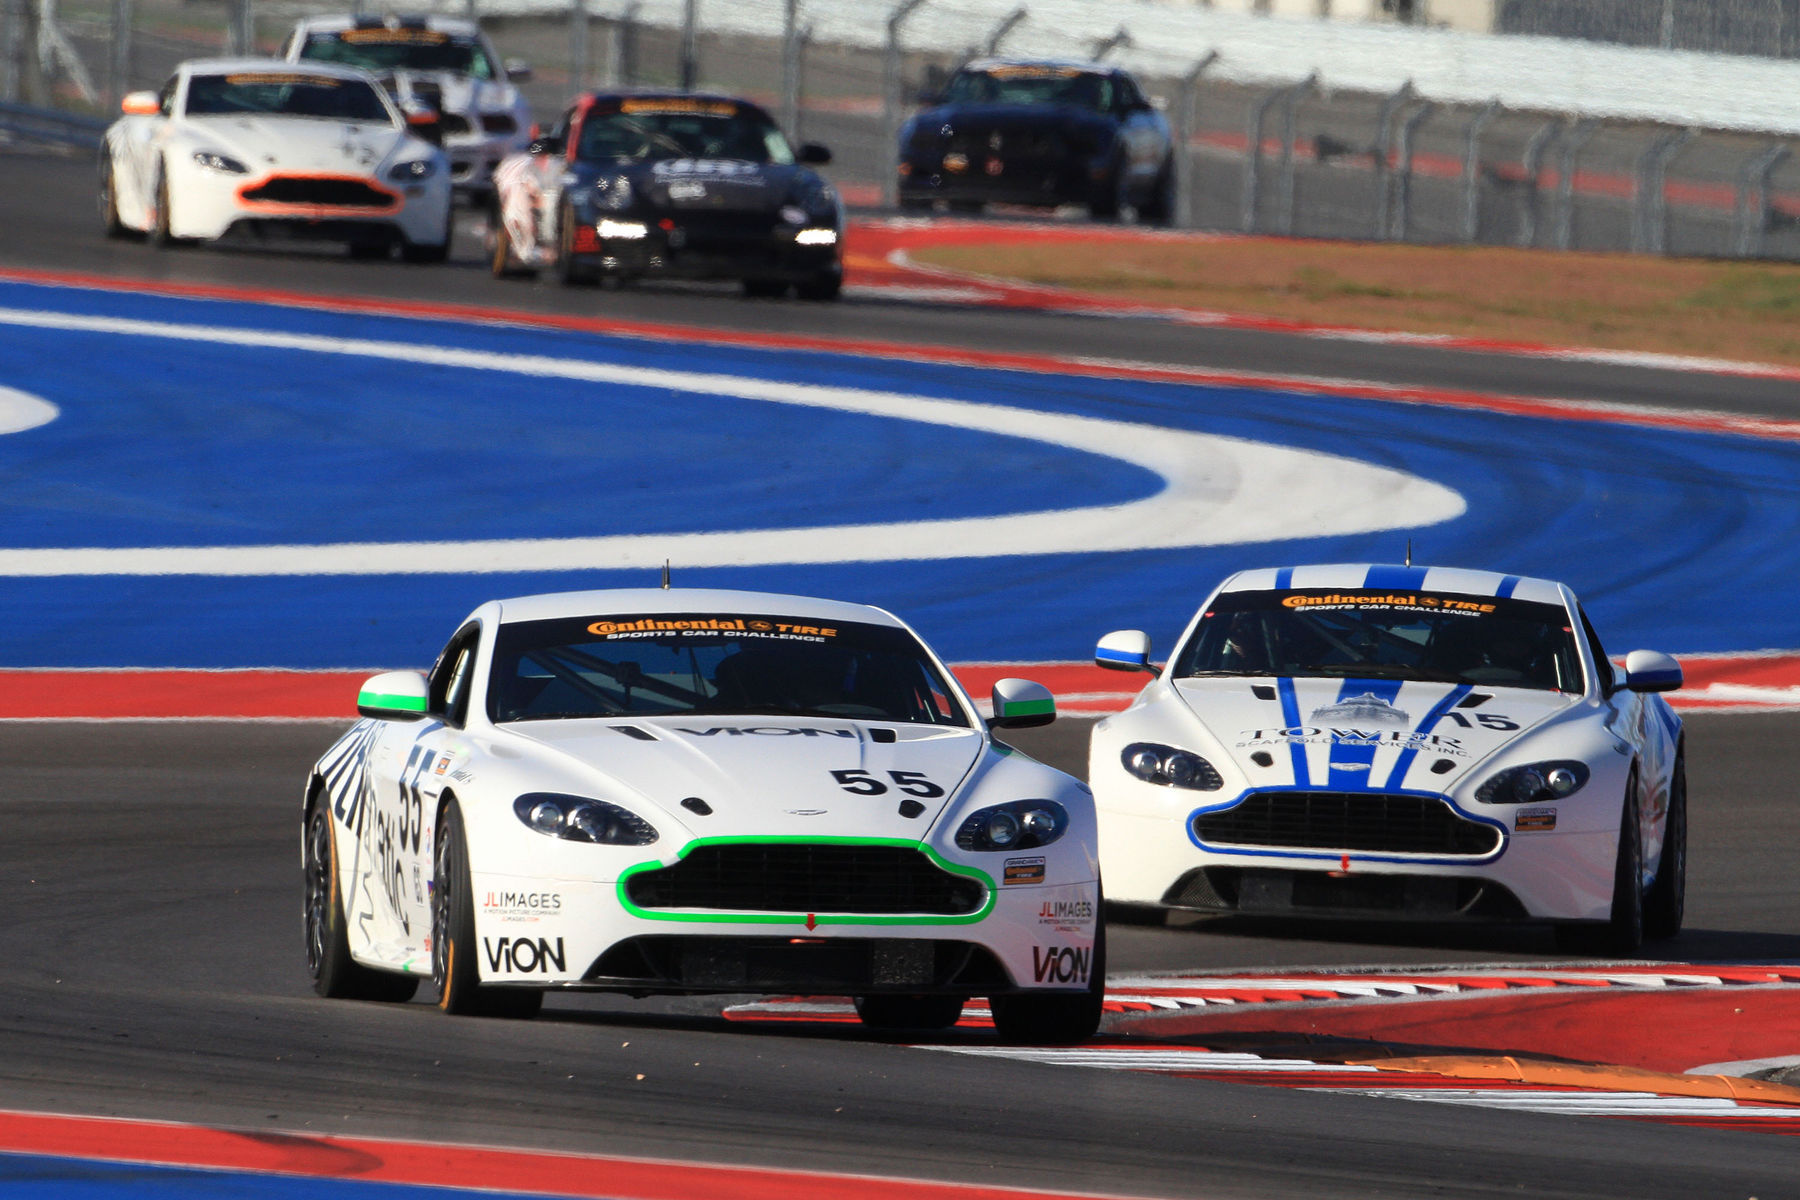 | Making the new COTA look easy as they breeze through the course on their Continental Tires